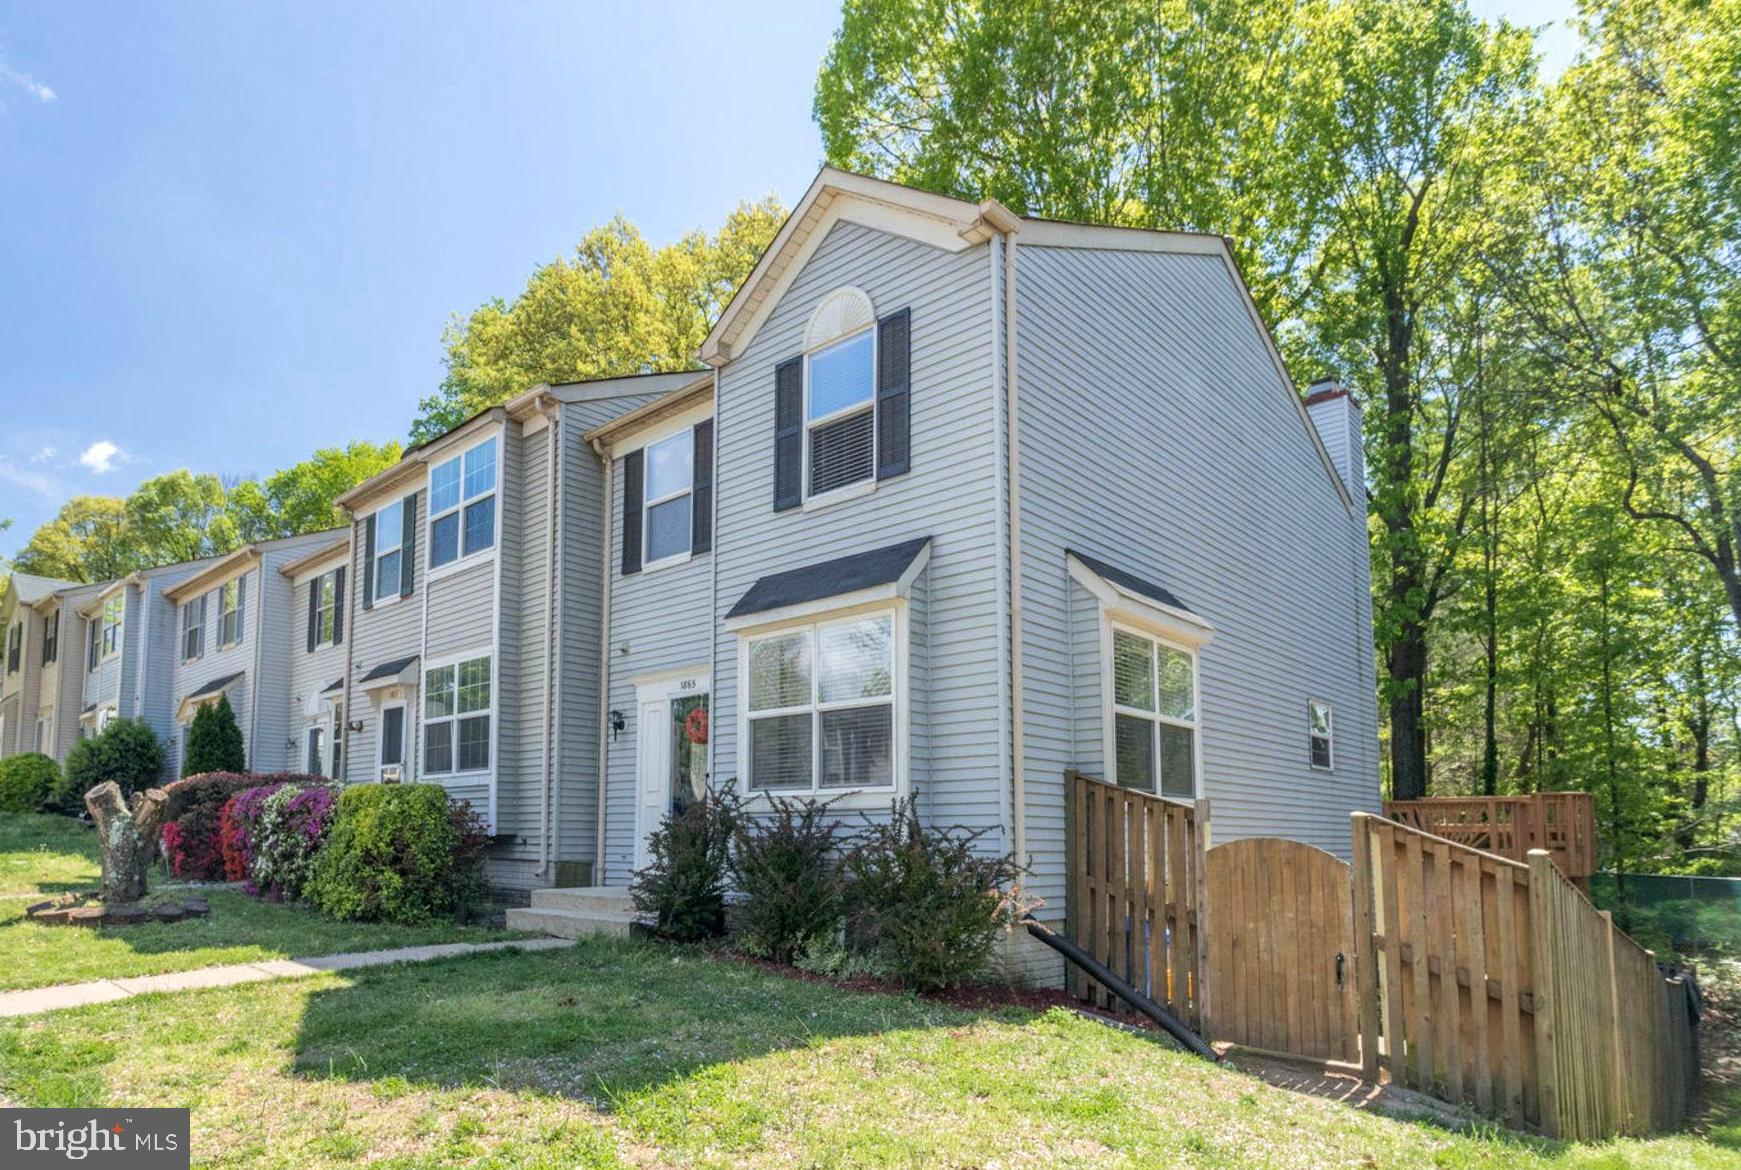 What an awesome location! SO convenient to shopping areas, schools, parks, restaurants, the Potomac Mills mall, movie theaters, fitness centers, etc.  This end unit townhome has it all! You only need to move in and enjoy! Featuring; a huge back deck off the main floor and large fenced in covered patio off the walkout basement~s living area.  The open & bright living area welcomes you into the main level of the home. The kitchen offers stainless appliances and the breakfast area tile flooring, plenty of windows overlooking the back deck and tons of counter & cabinet space.  The master bedroom, master bathroom, two additional bedrooms and a full bath round out the upstairs. The spacious basement features a family room with a fireplace, a bonus room that has so many possible uses, a full bathroom and laundry space.  See this incredible property today!